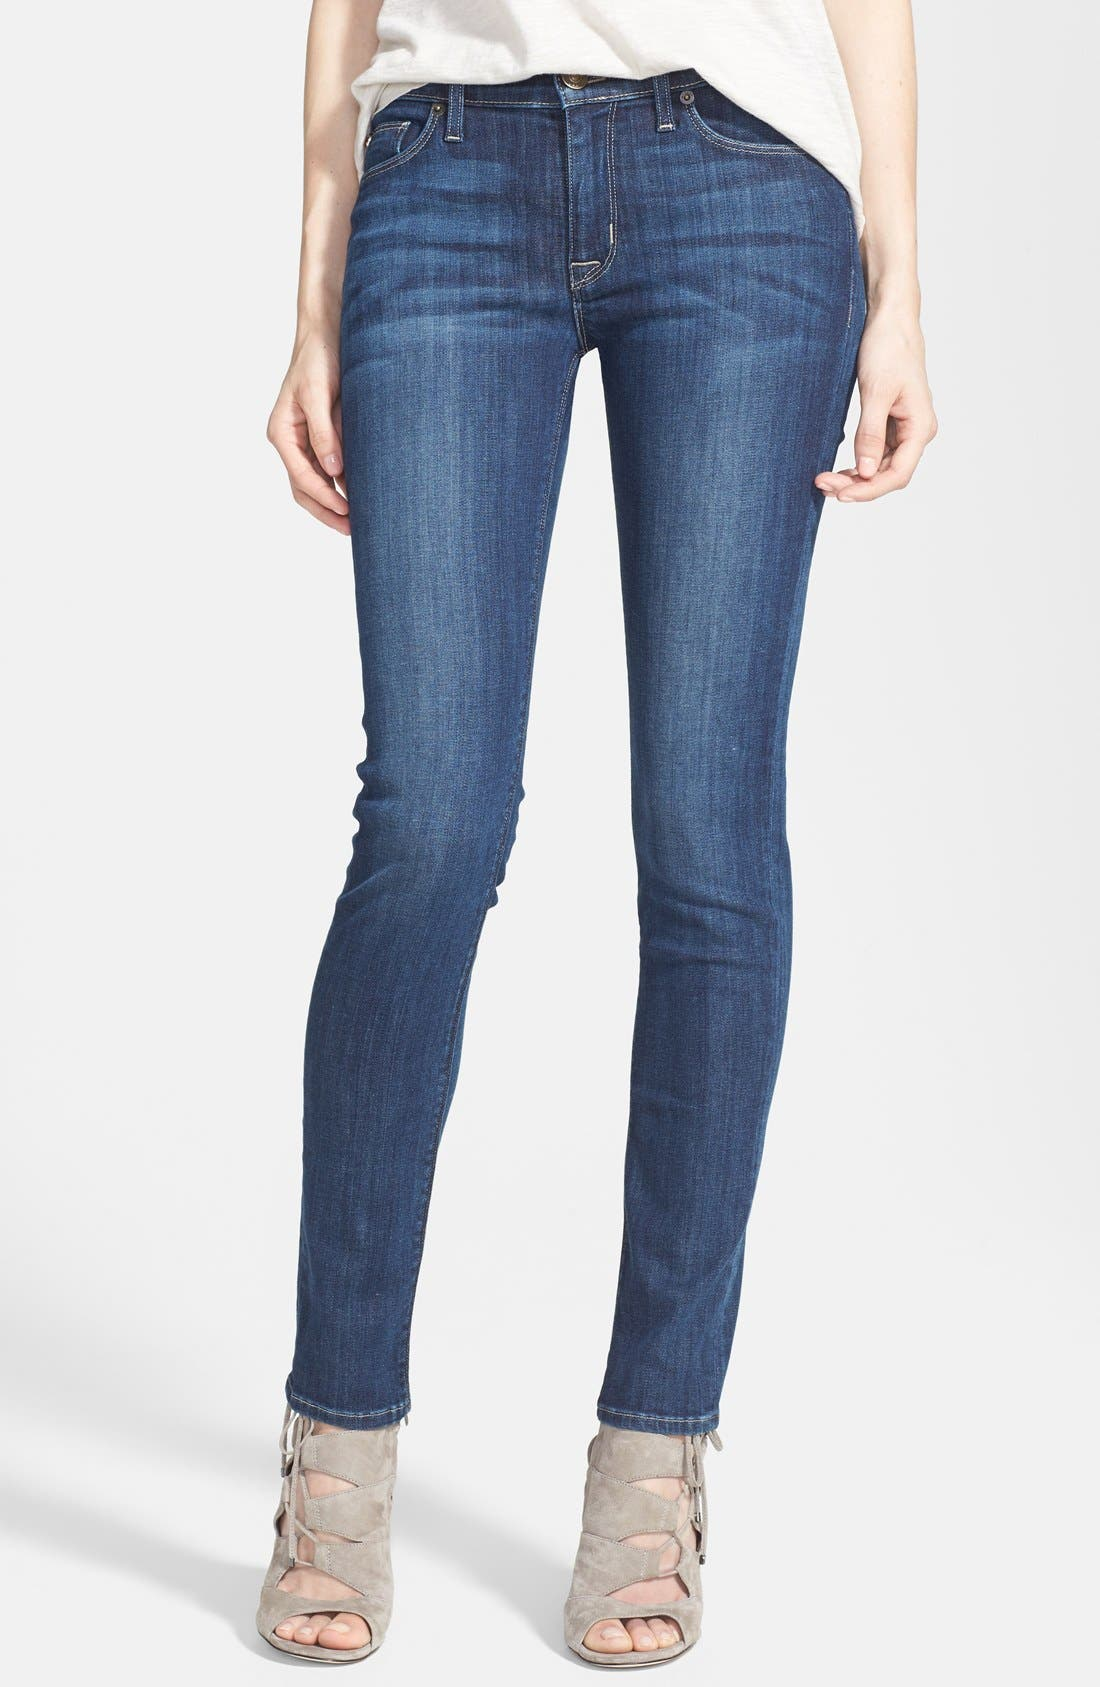 Main Image - Hudson Jeans 'Collette' Skinny Jeans (Cascade) (Nordstrom Exclusive)